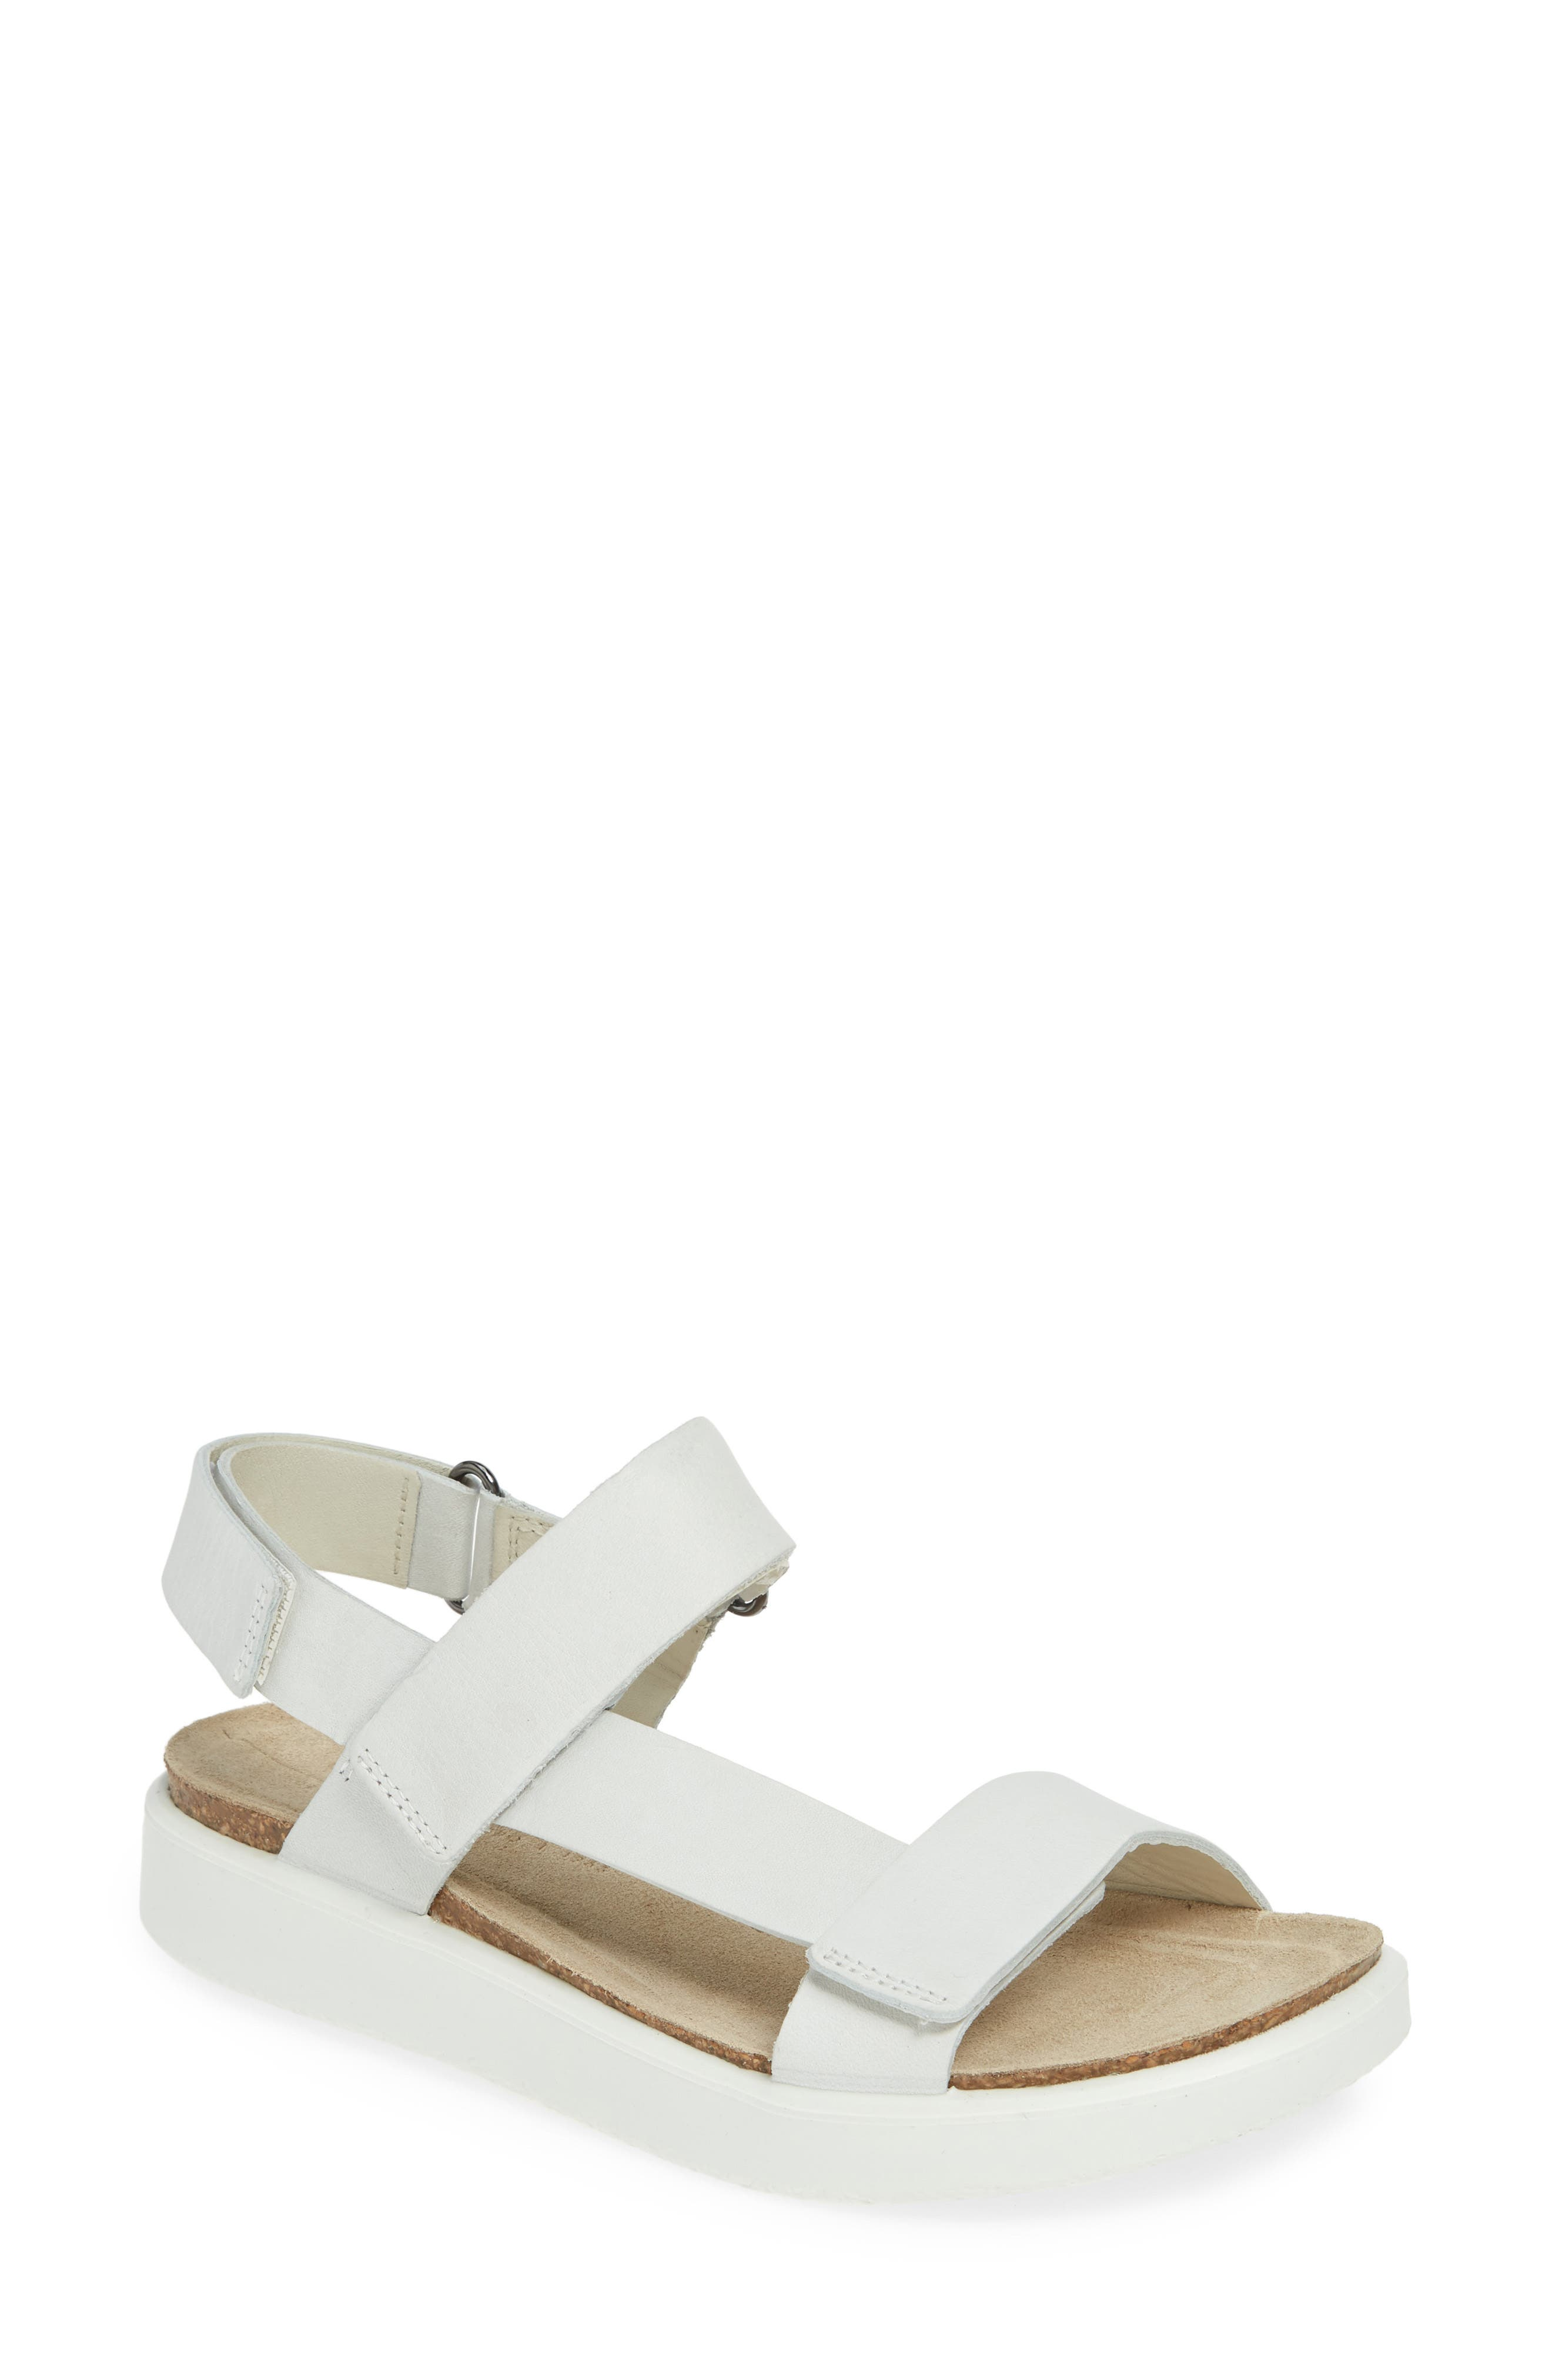 UPC 809704946528 product image for Women's Ecco Corksphere Strap Sandal, Size 8-8.5US / 39EU - White | upcitemdb.com